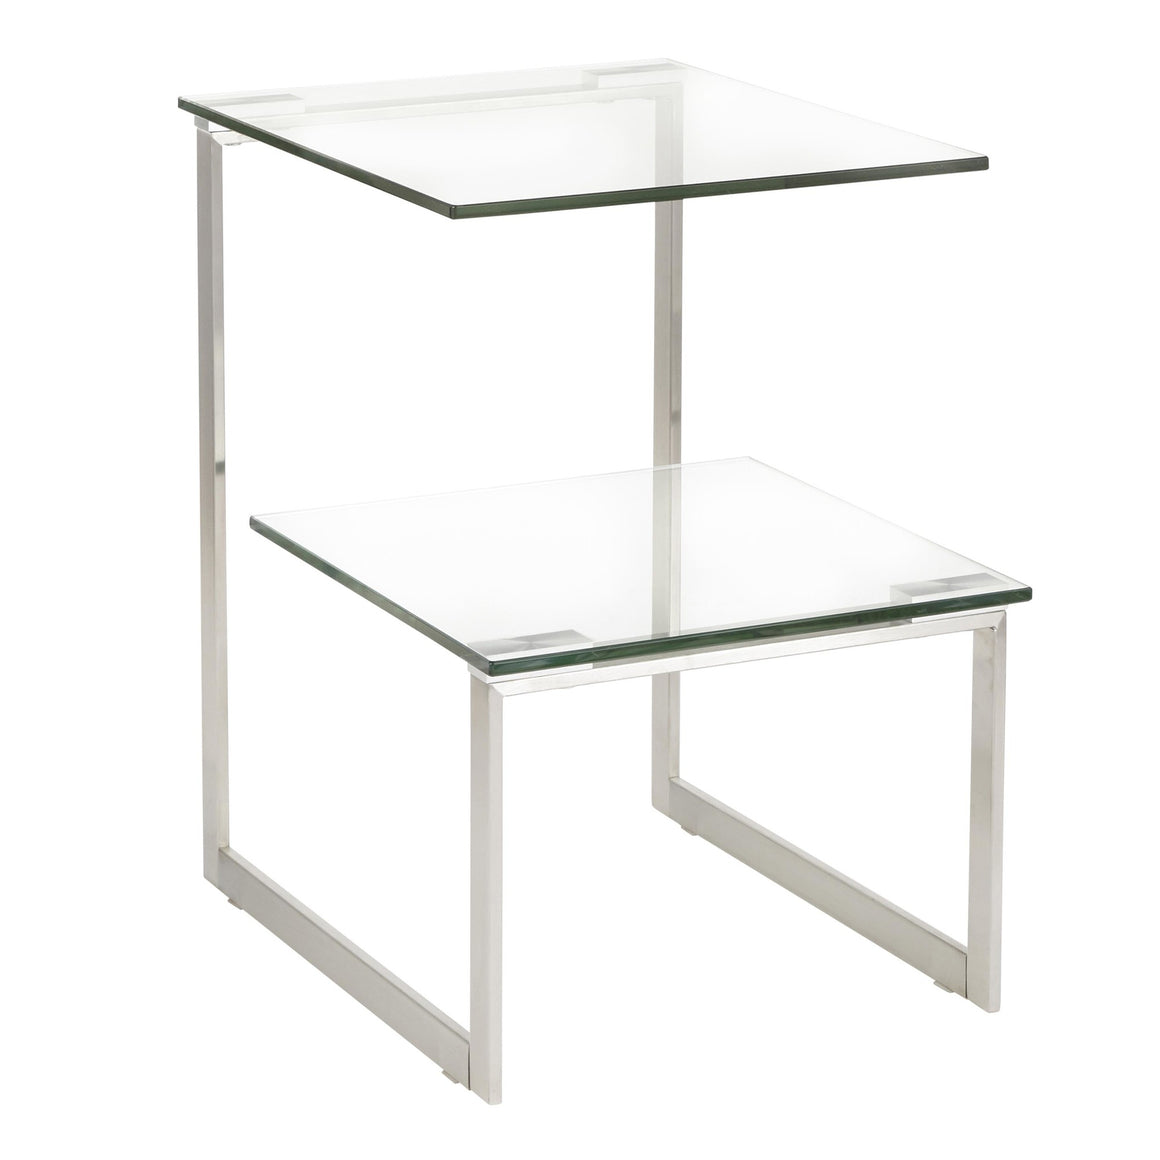 6G Contemporary End Table in Stainless Steel with Clear Glass by LumiSource